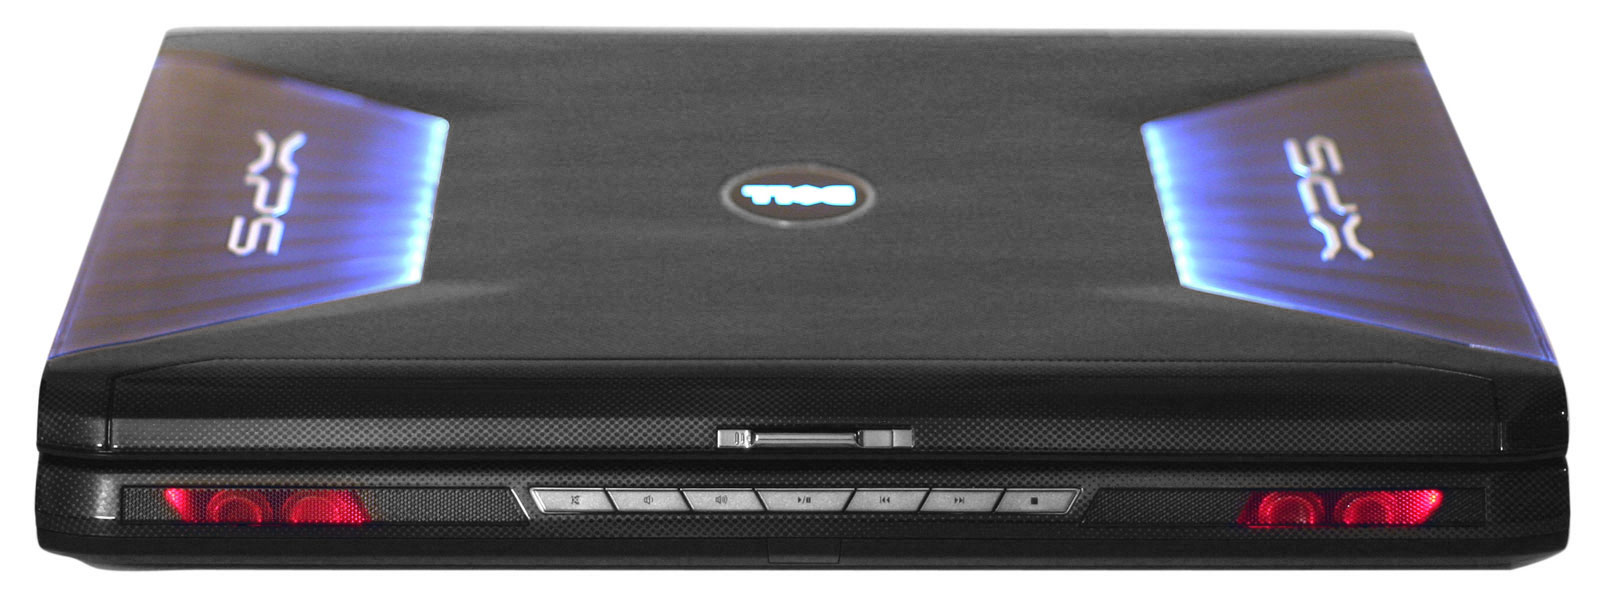 DRIVERS UPDATE: DELL XPS M1730 NOTEBOOK AGEIA PHYSX PROCESSOR